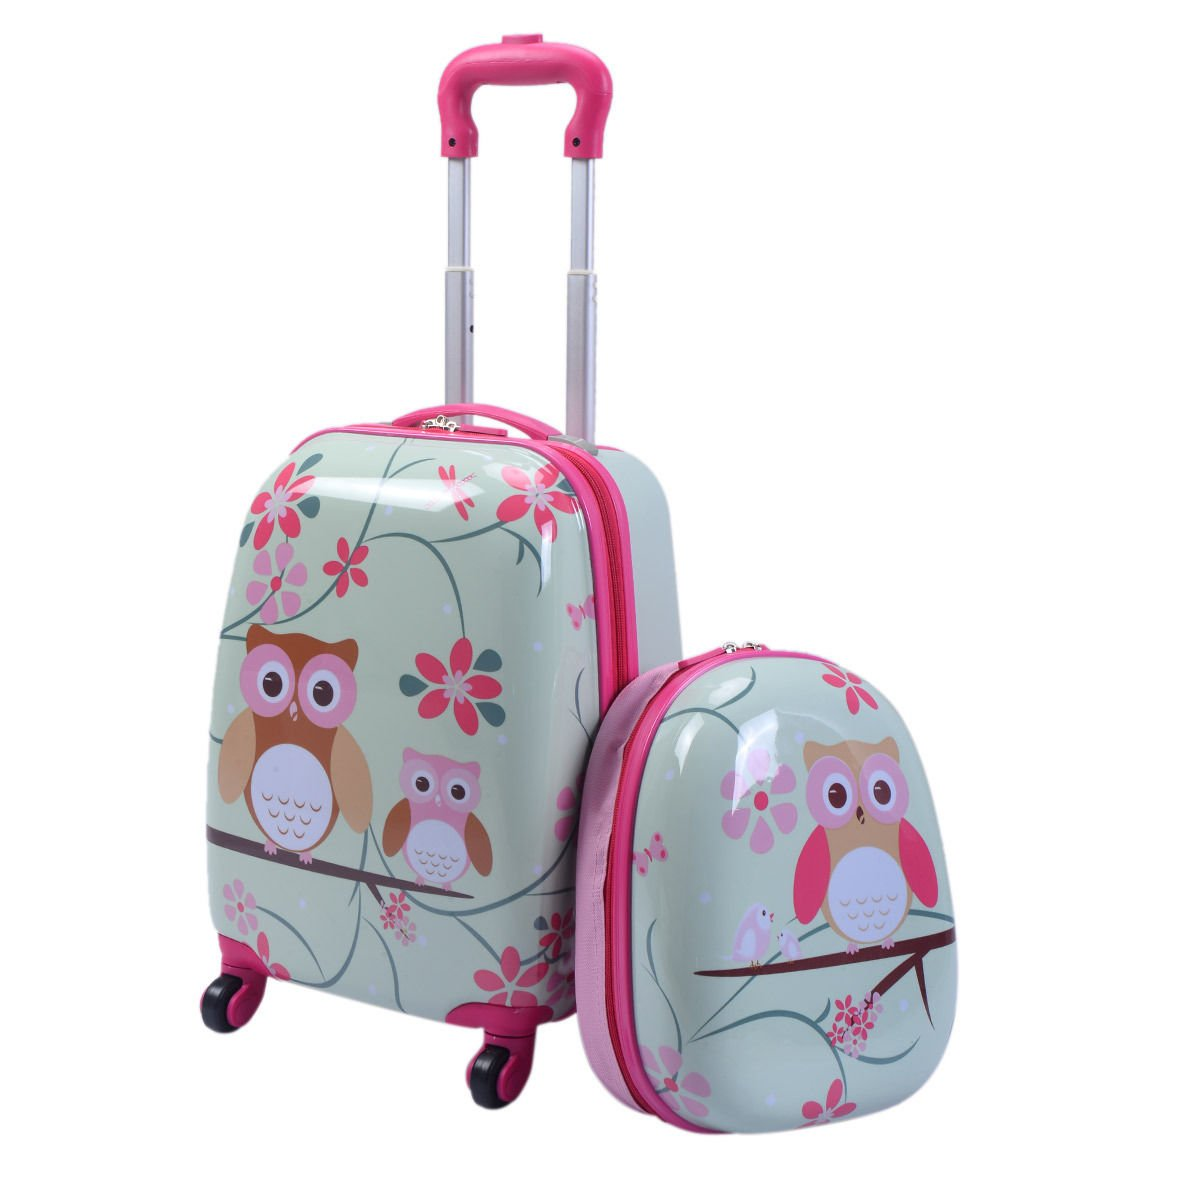 Goplus 2Pc 12'' 16'' Kids Carry On Luggage Set Upright Hard Side Hard Shell Suitcase School Travel Trolley ABS (Owls)